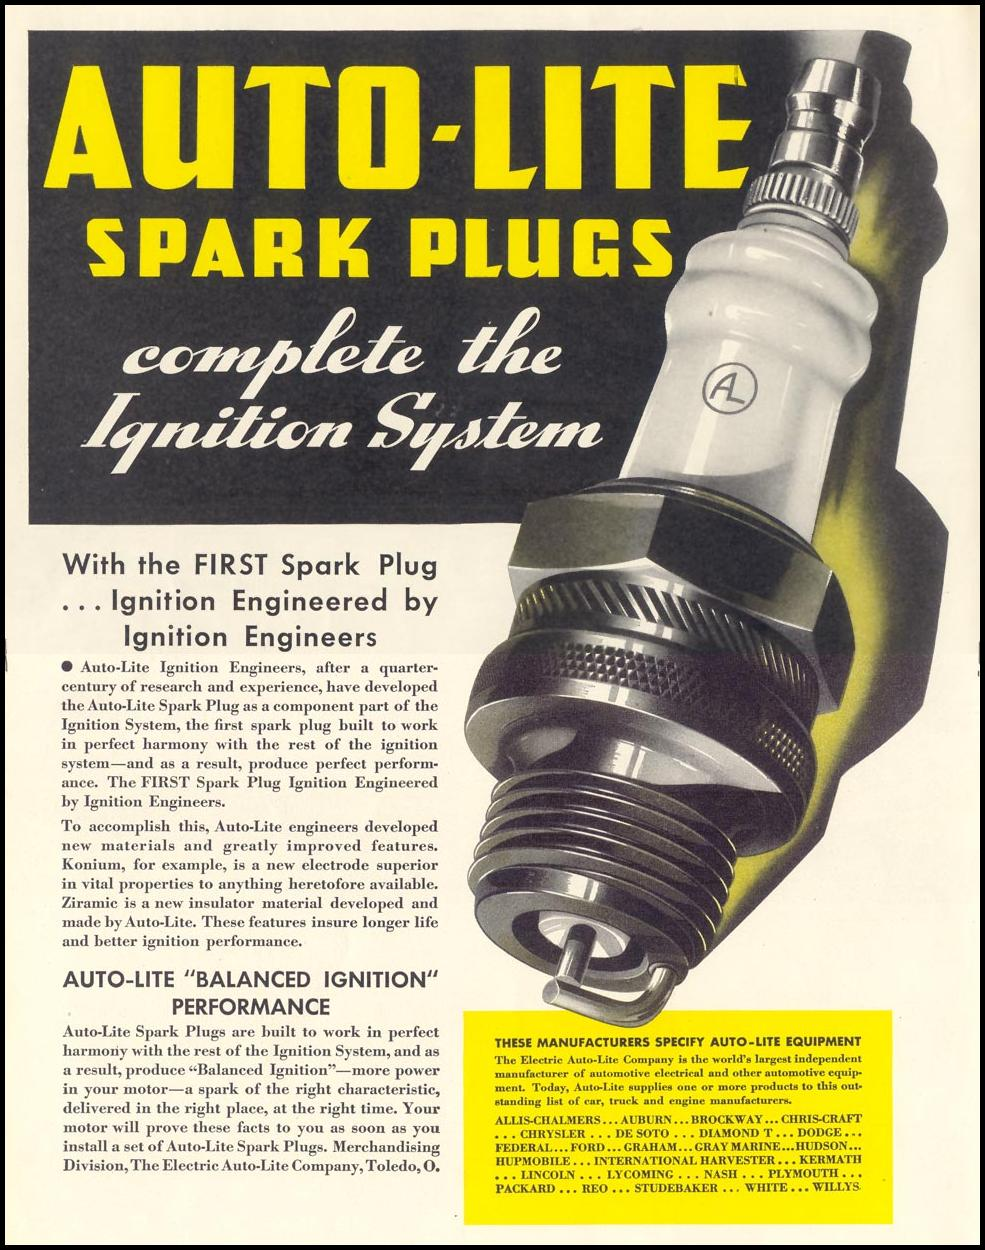 AUTO-LITE SPARK PLUGS